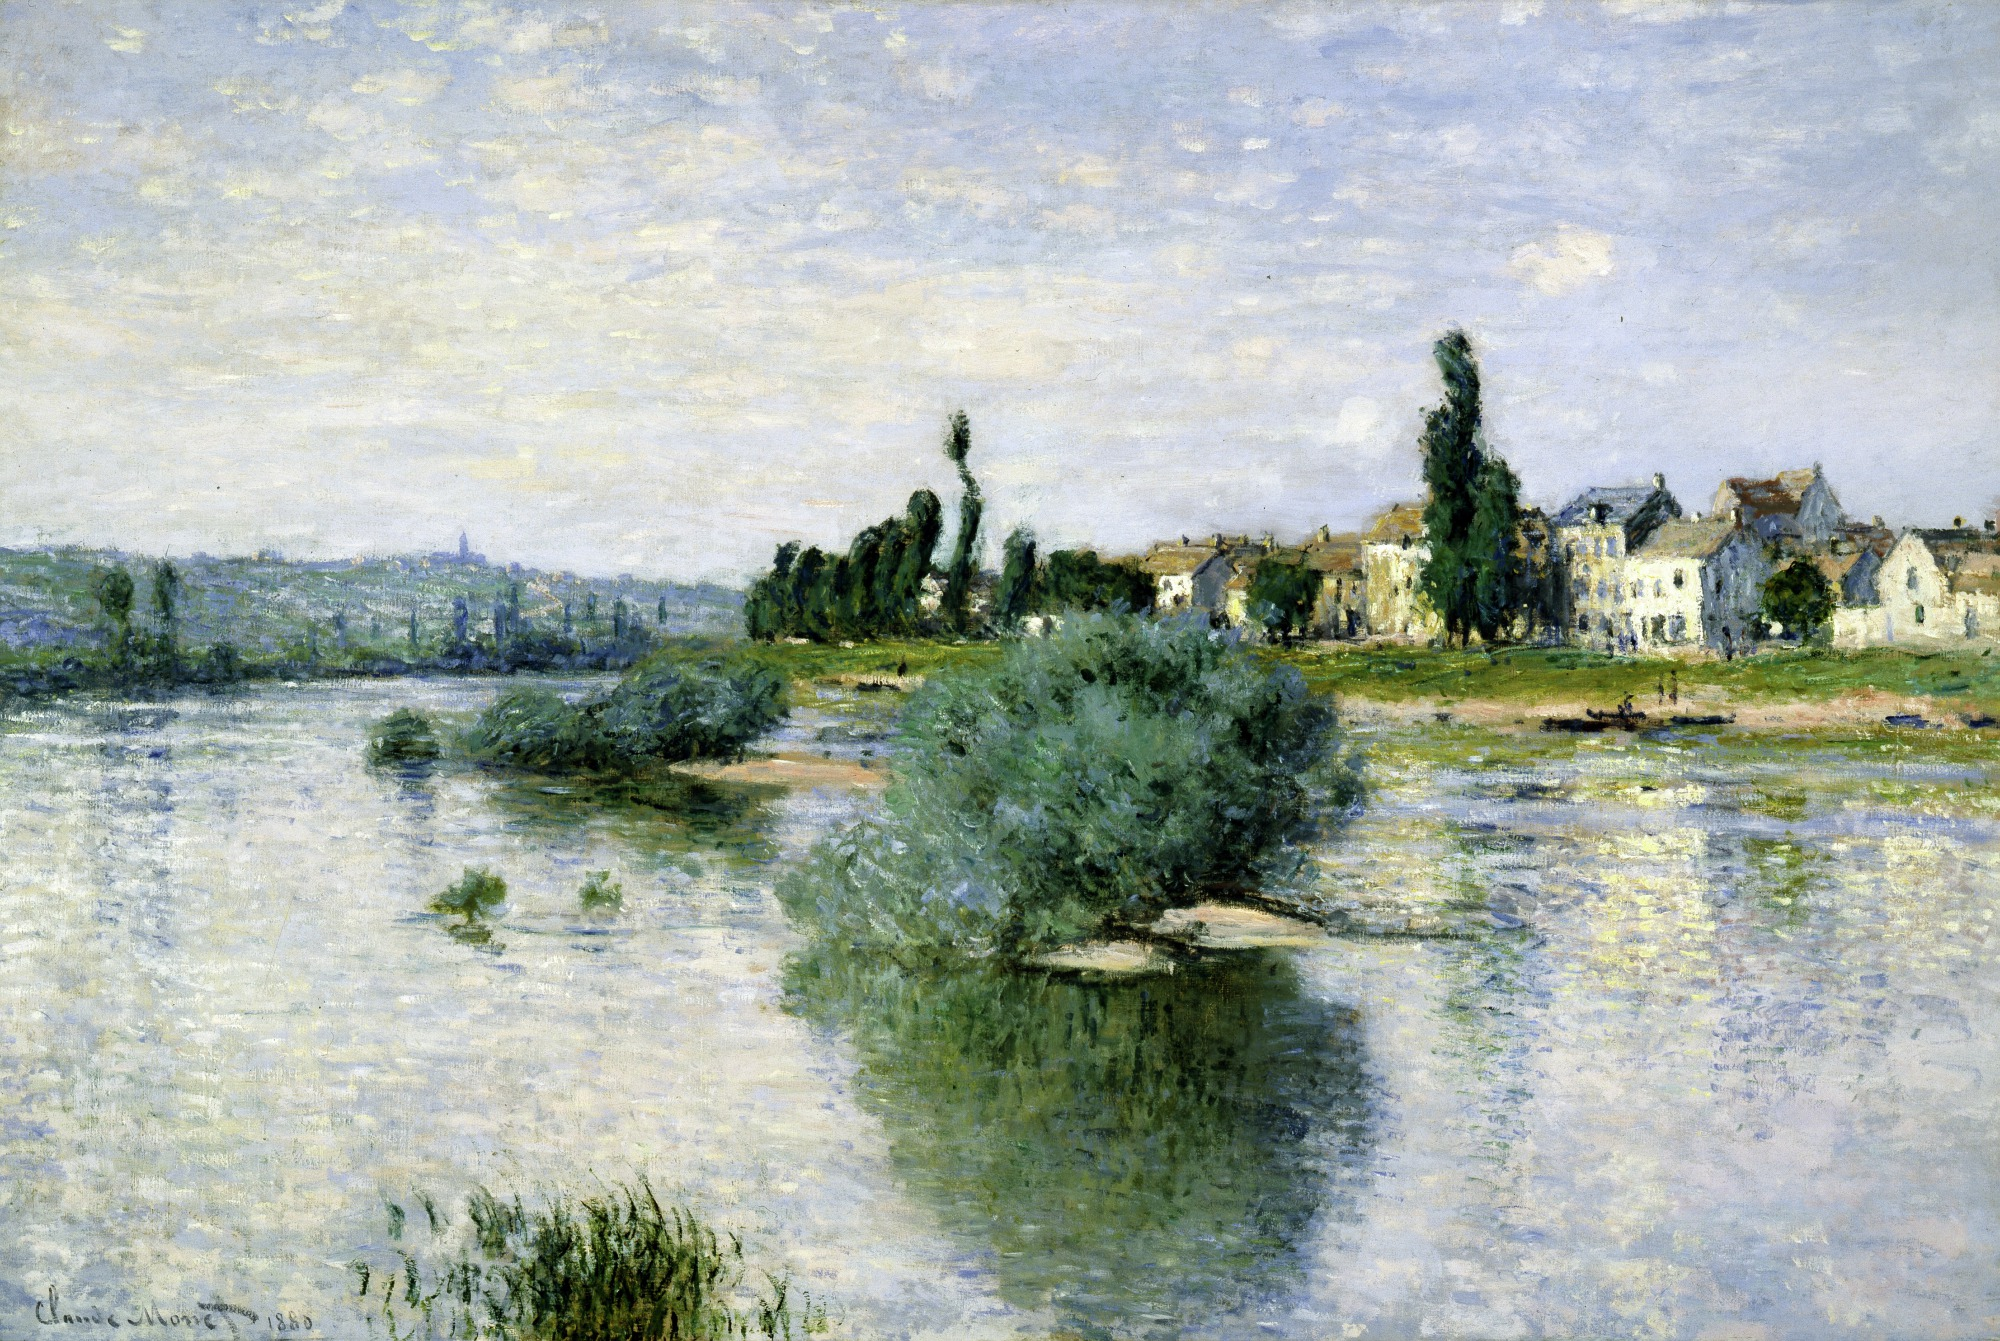 Claude Monet, The Seine at Lavacourt, 1880, oil on canvas, Dallas Museum of Art, Munger Fund 1938.4.M